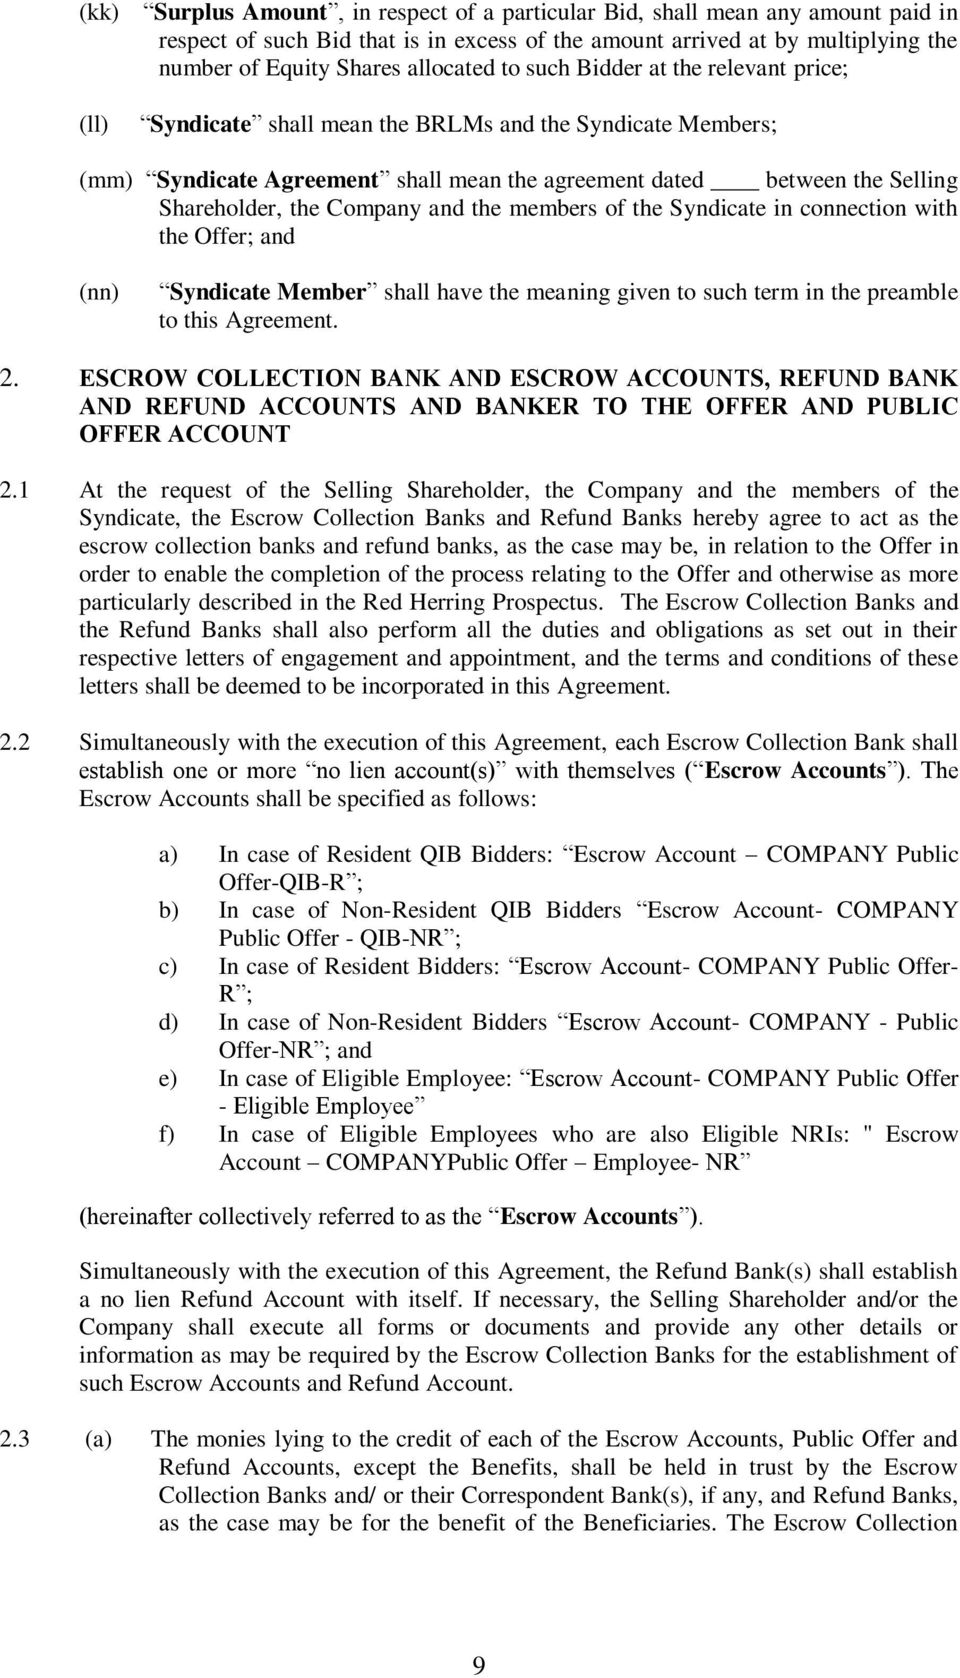 Escrow Agreement Dated Between Selling Shareholder And Company And